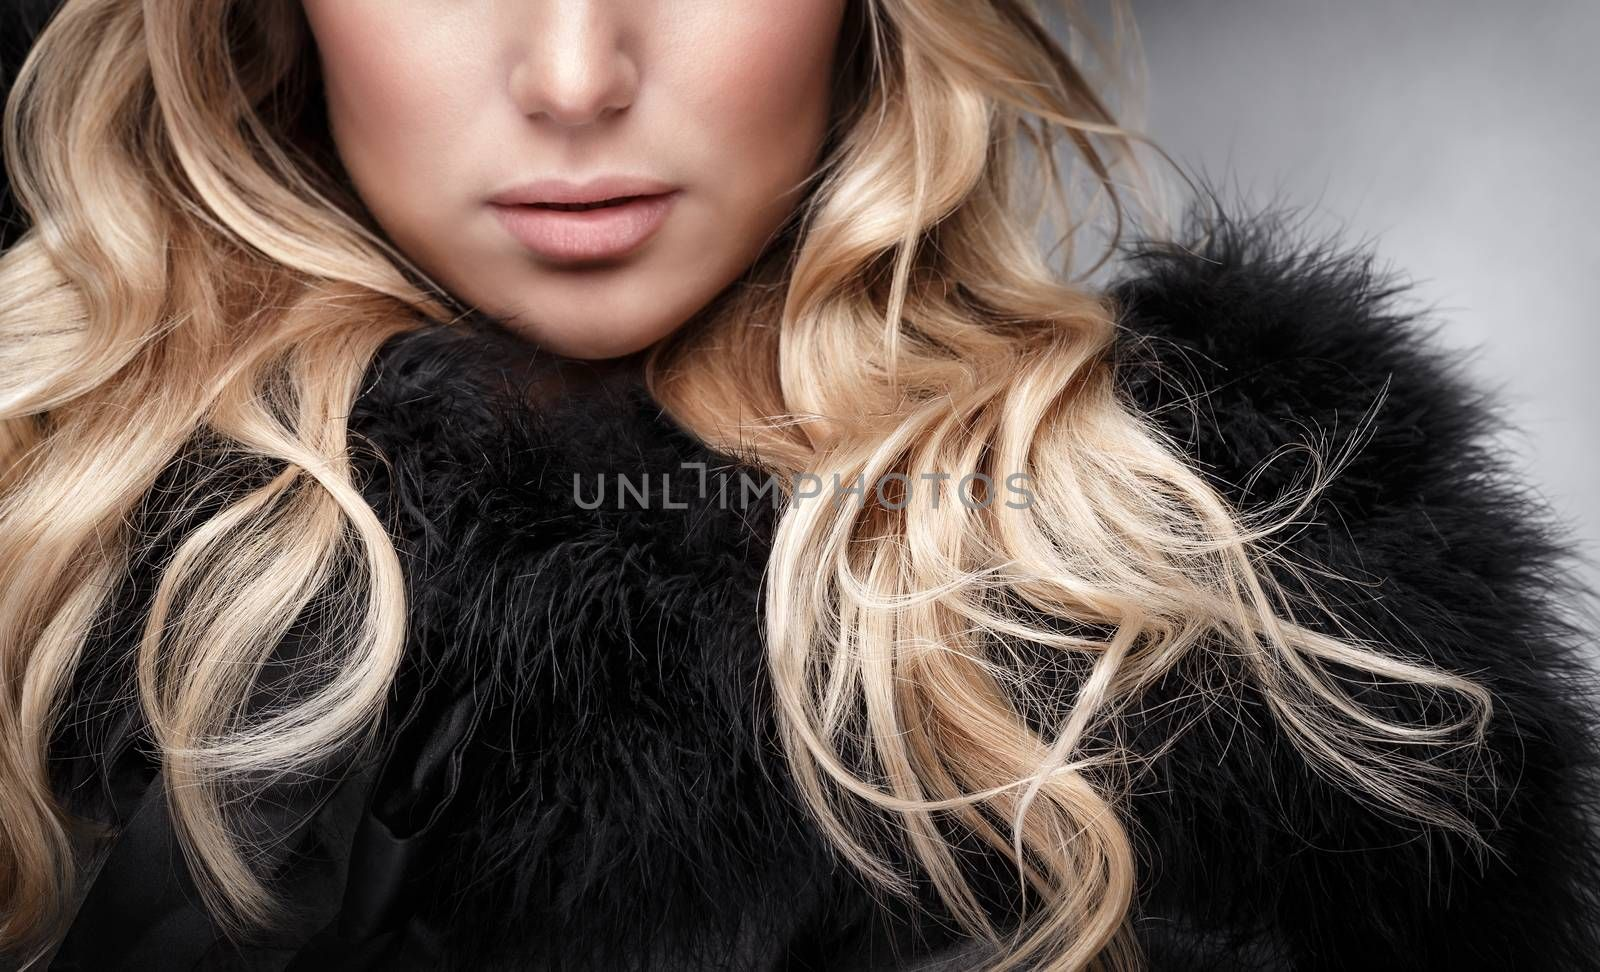 Closeup portrait of beautiful woman with blonde curly hair, face part, glamour fashionable look, luxury beauty salon